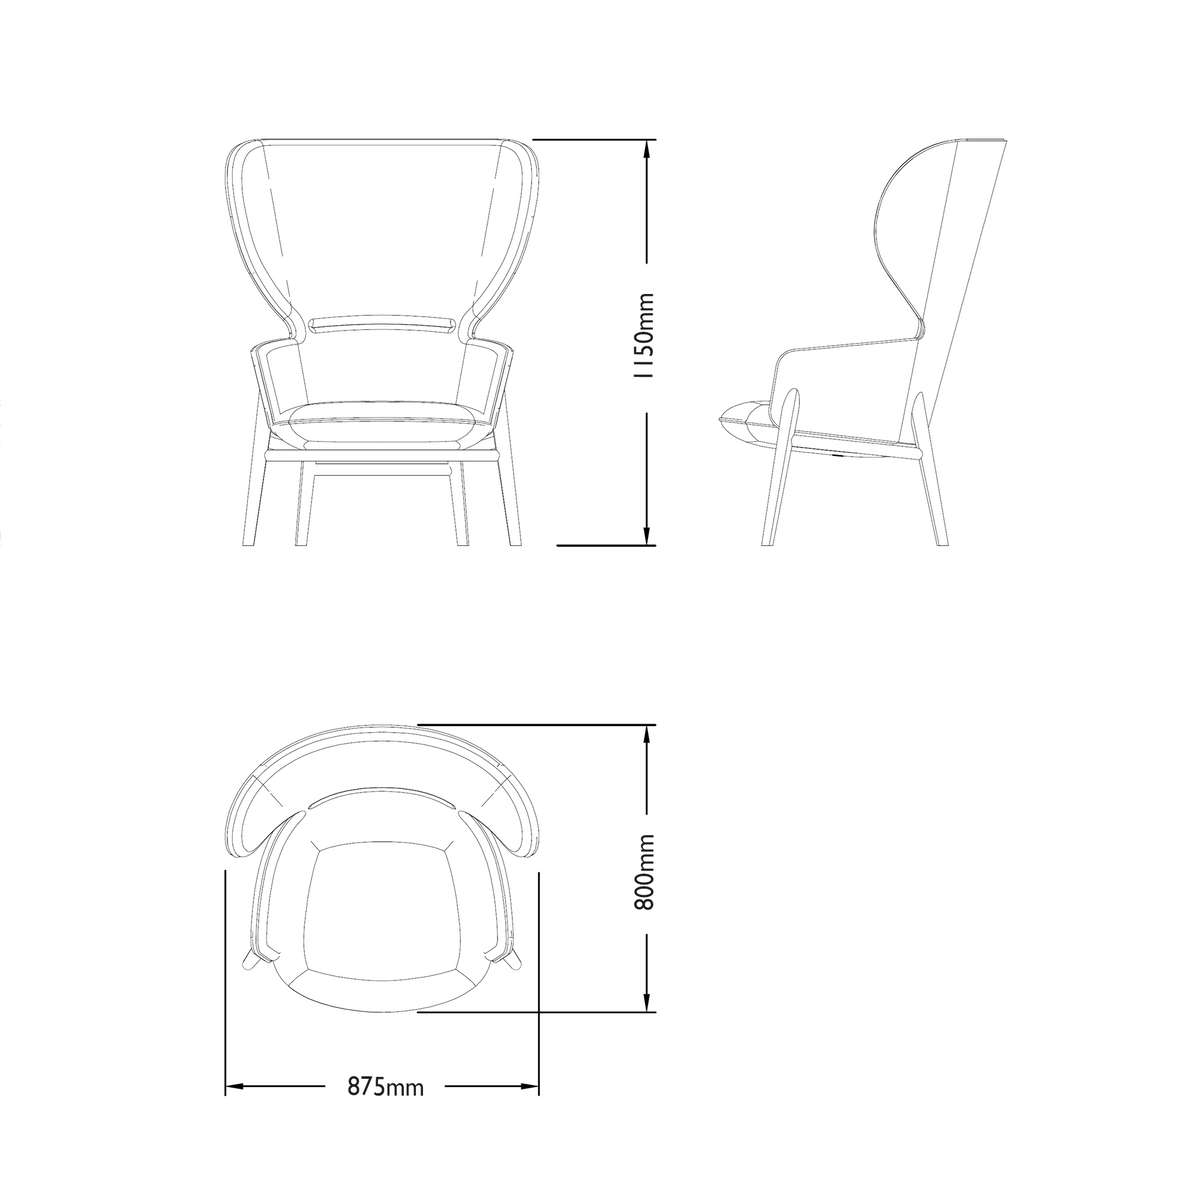 Dimensions for Connection Office Hygge High Back Oak Chair